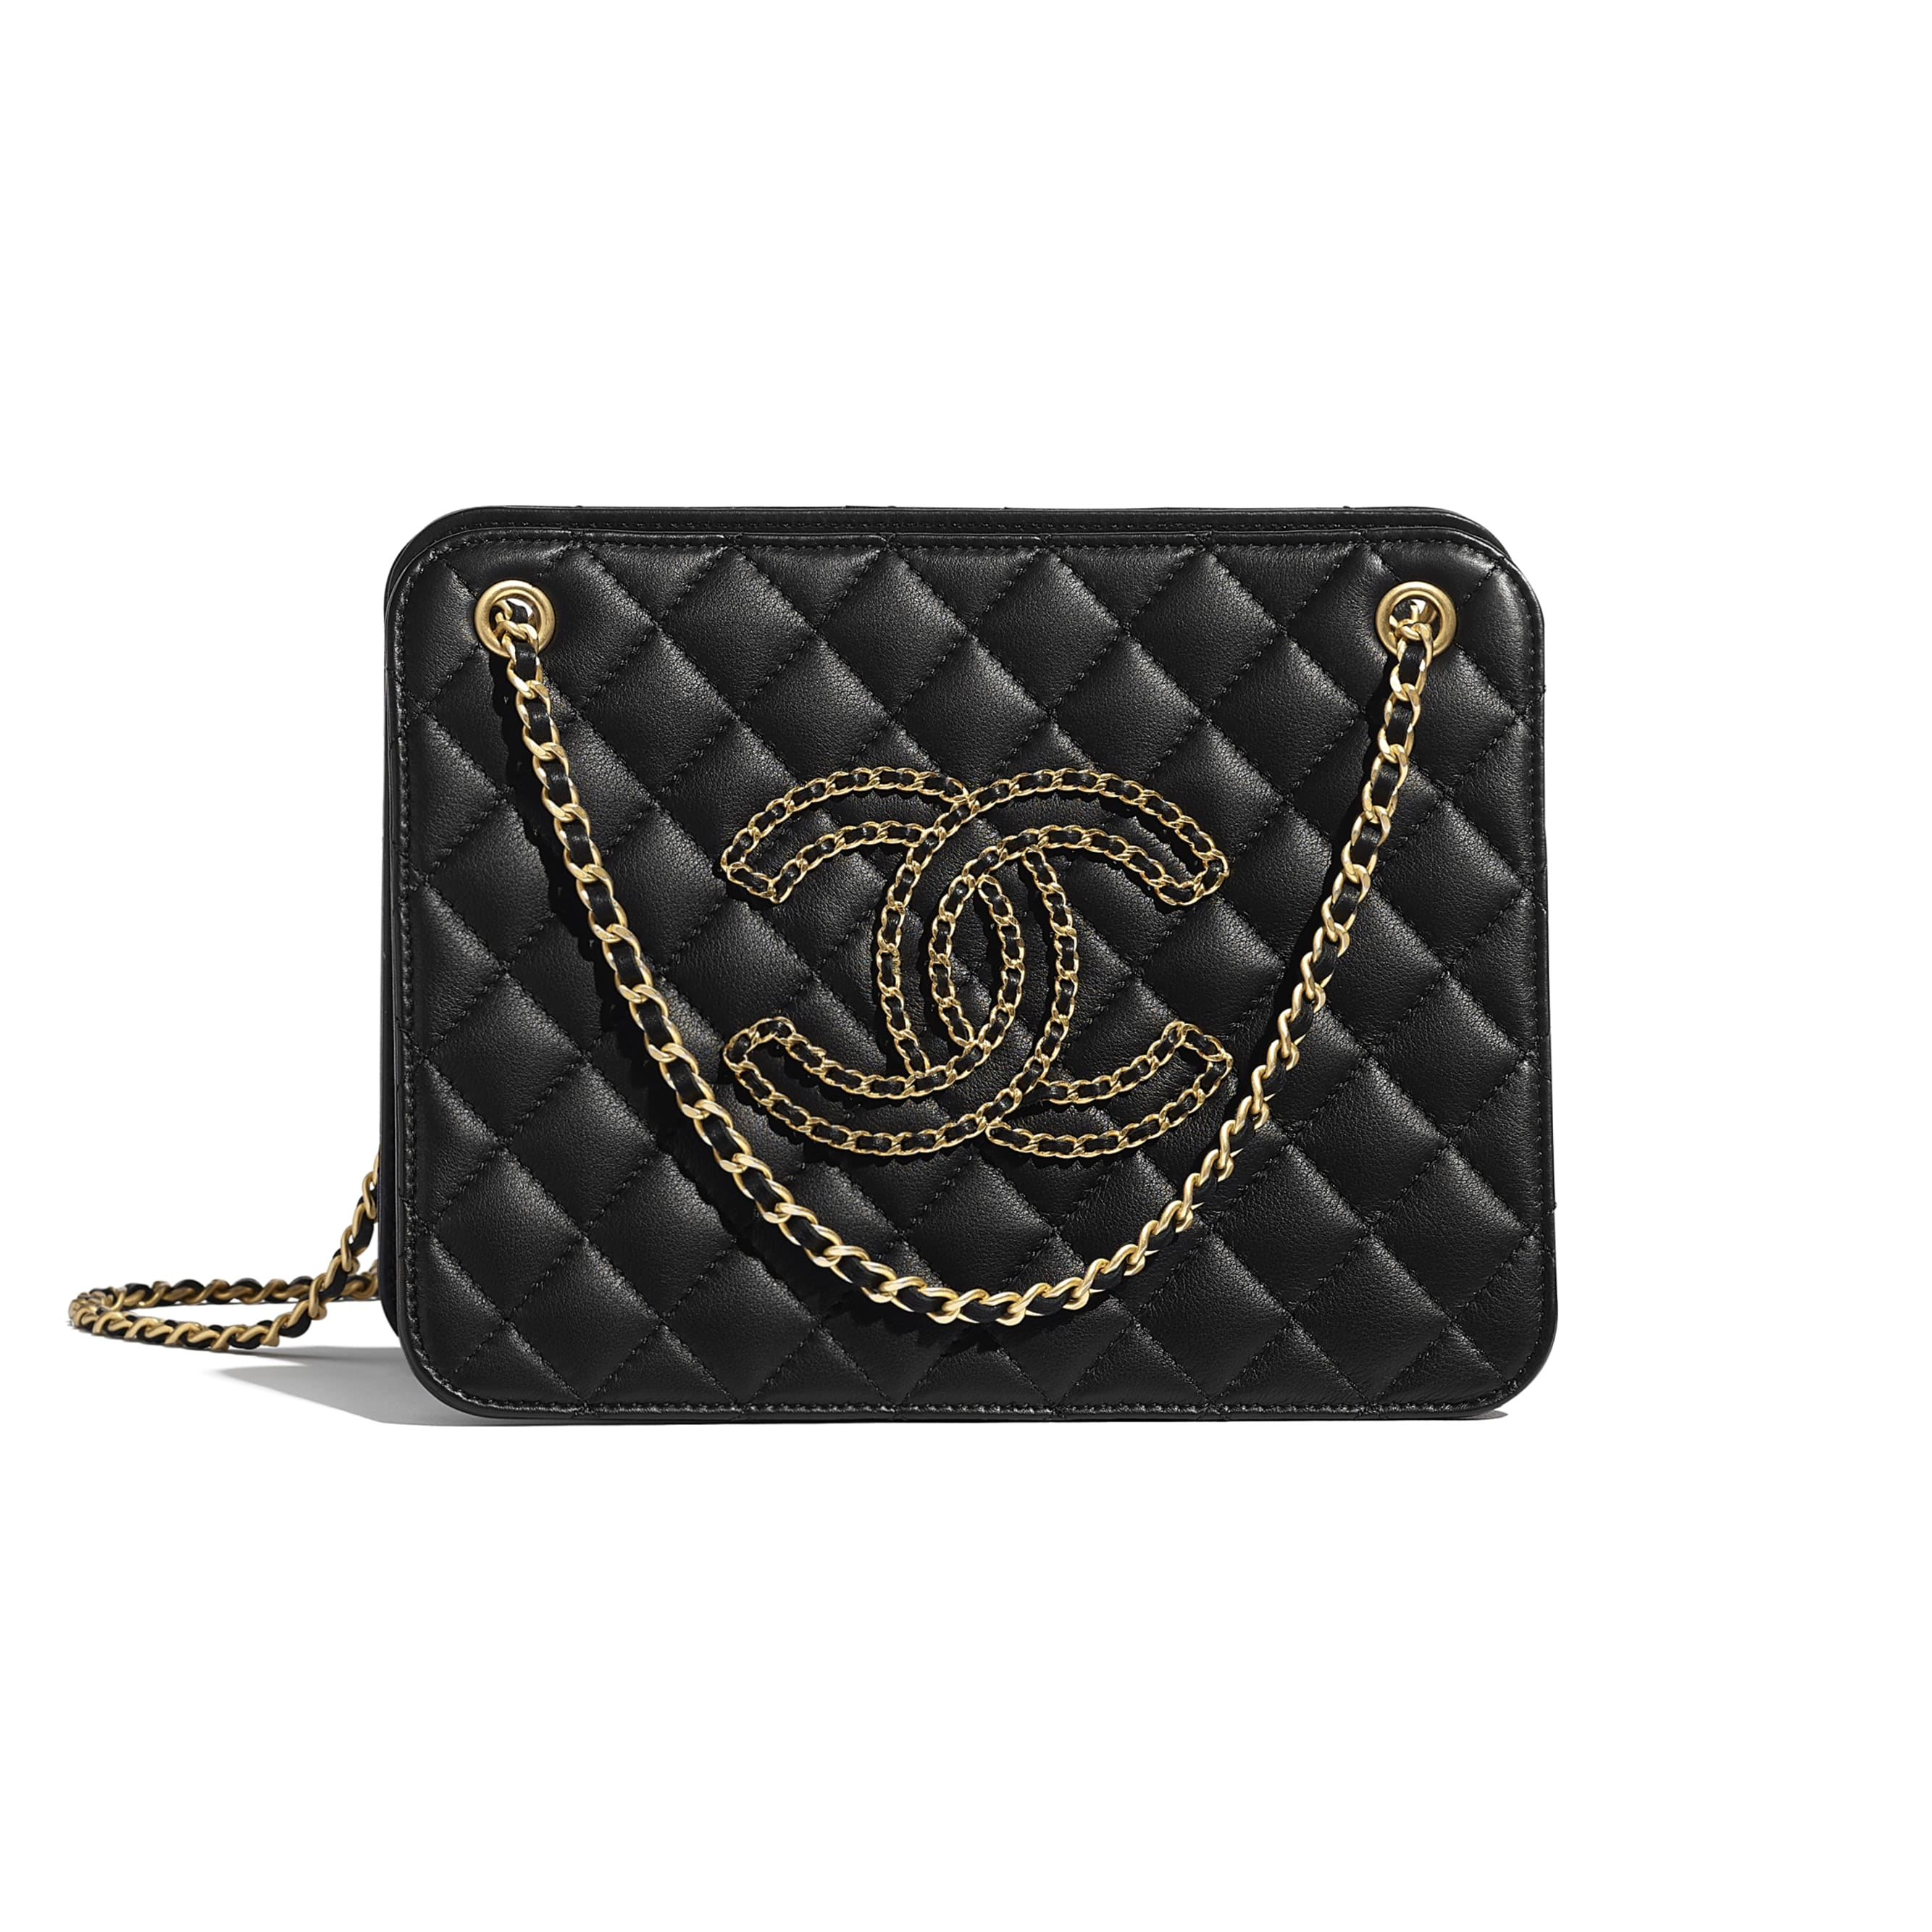 Accordion Handbag - Black - Calfskin & Gold-Tone Metal - CHANEL - Default view - see standard sized version